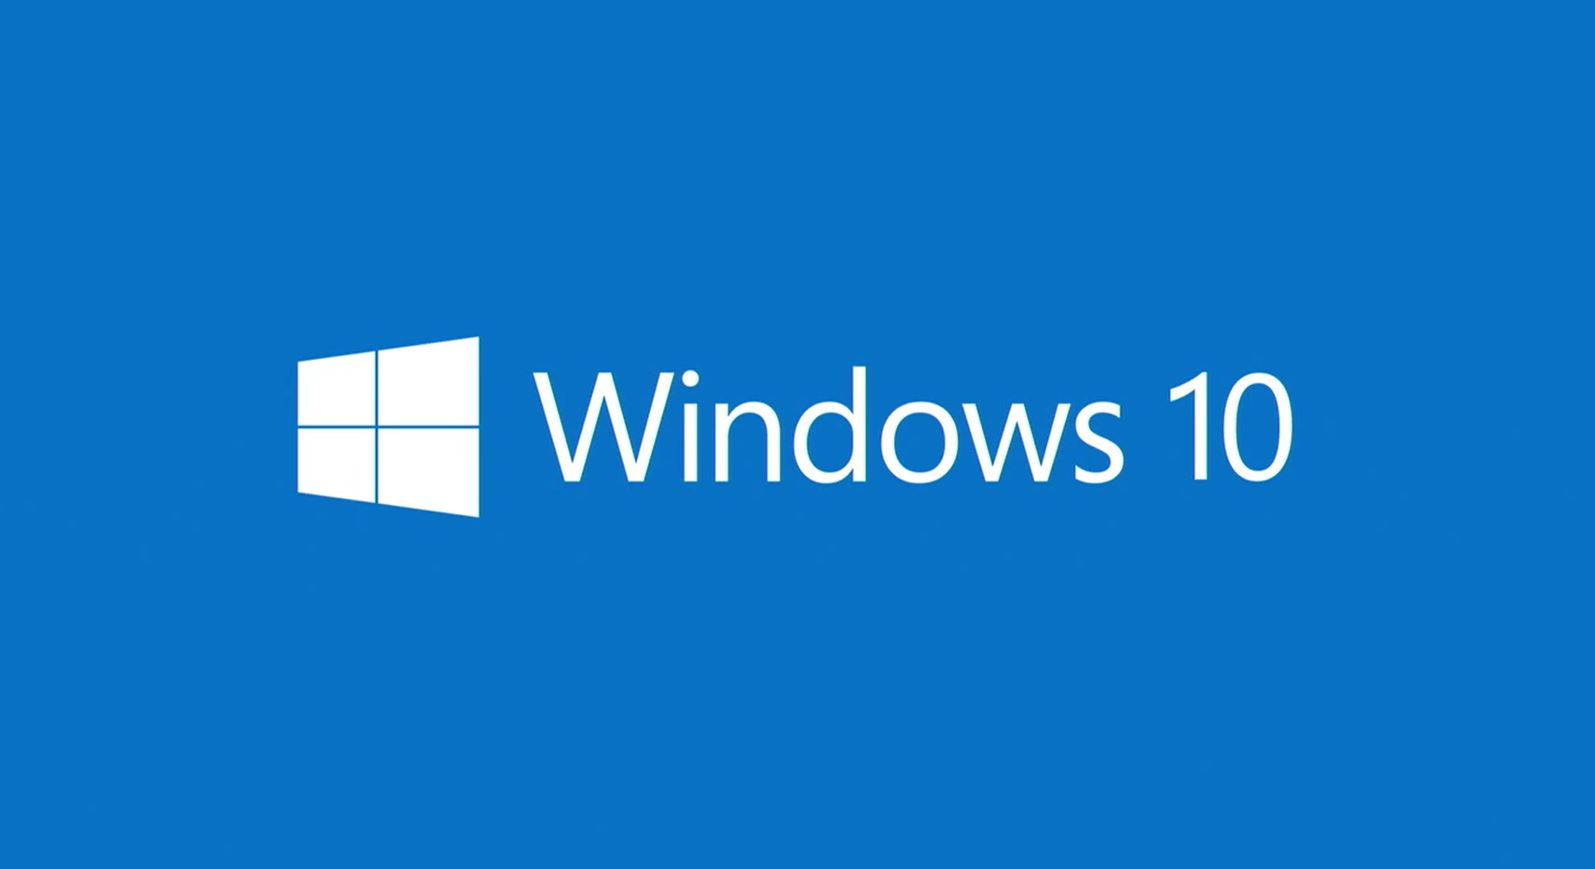 Microsoft releases new windows 10 build 9879 isos for Microsoft windows